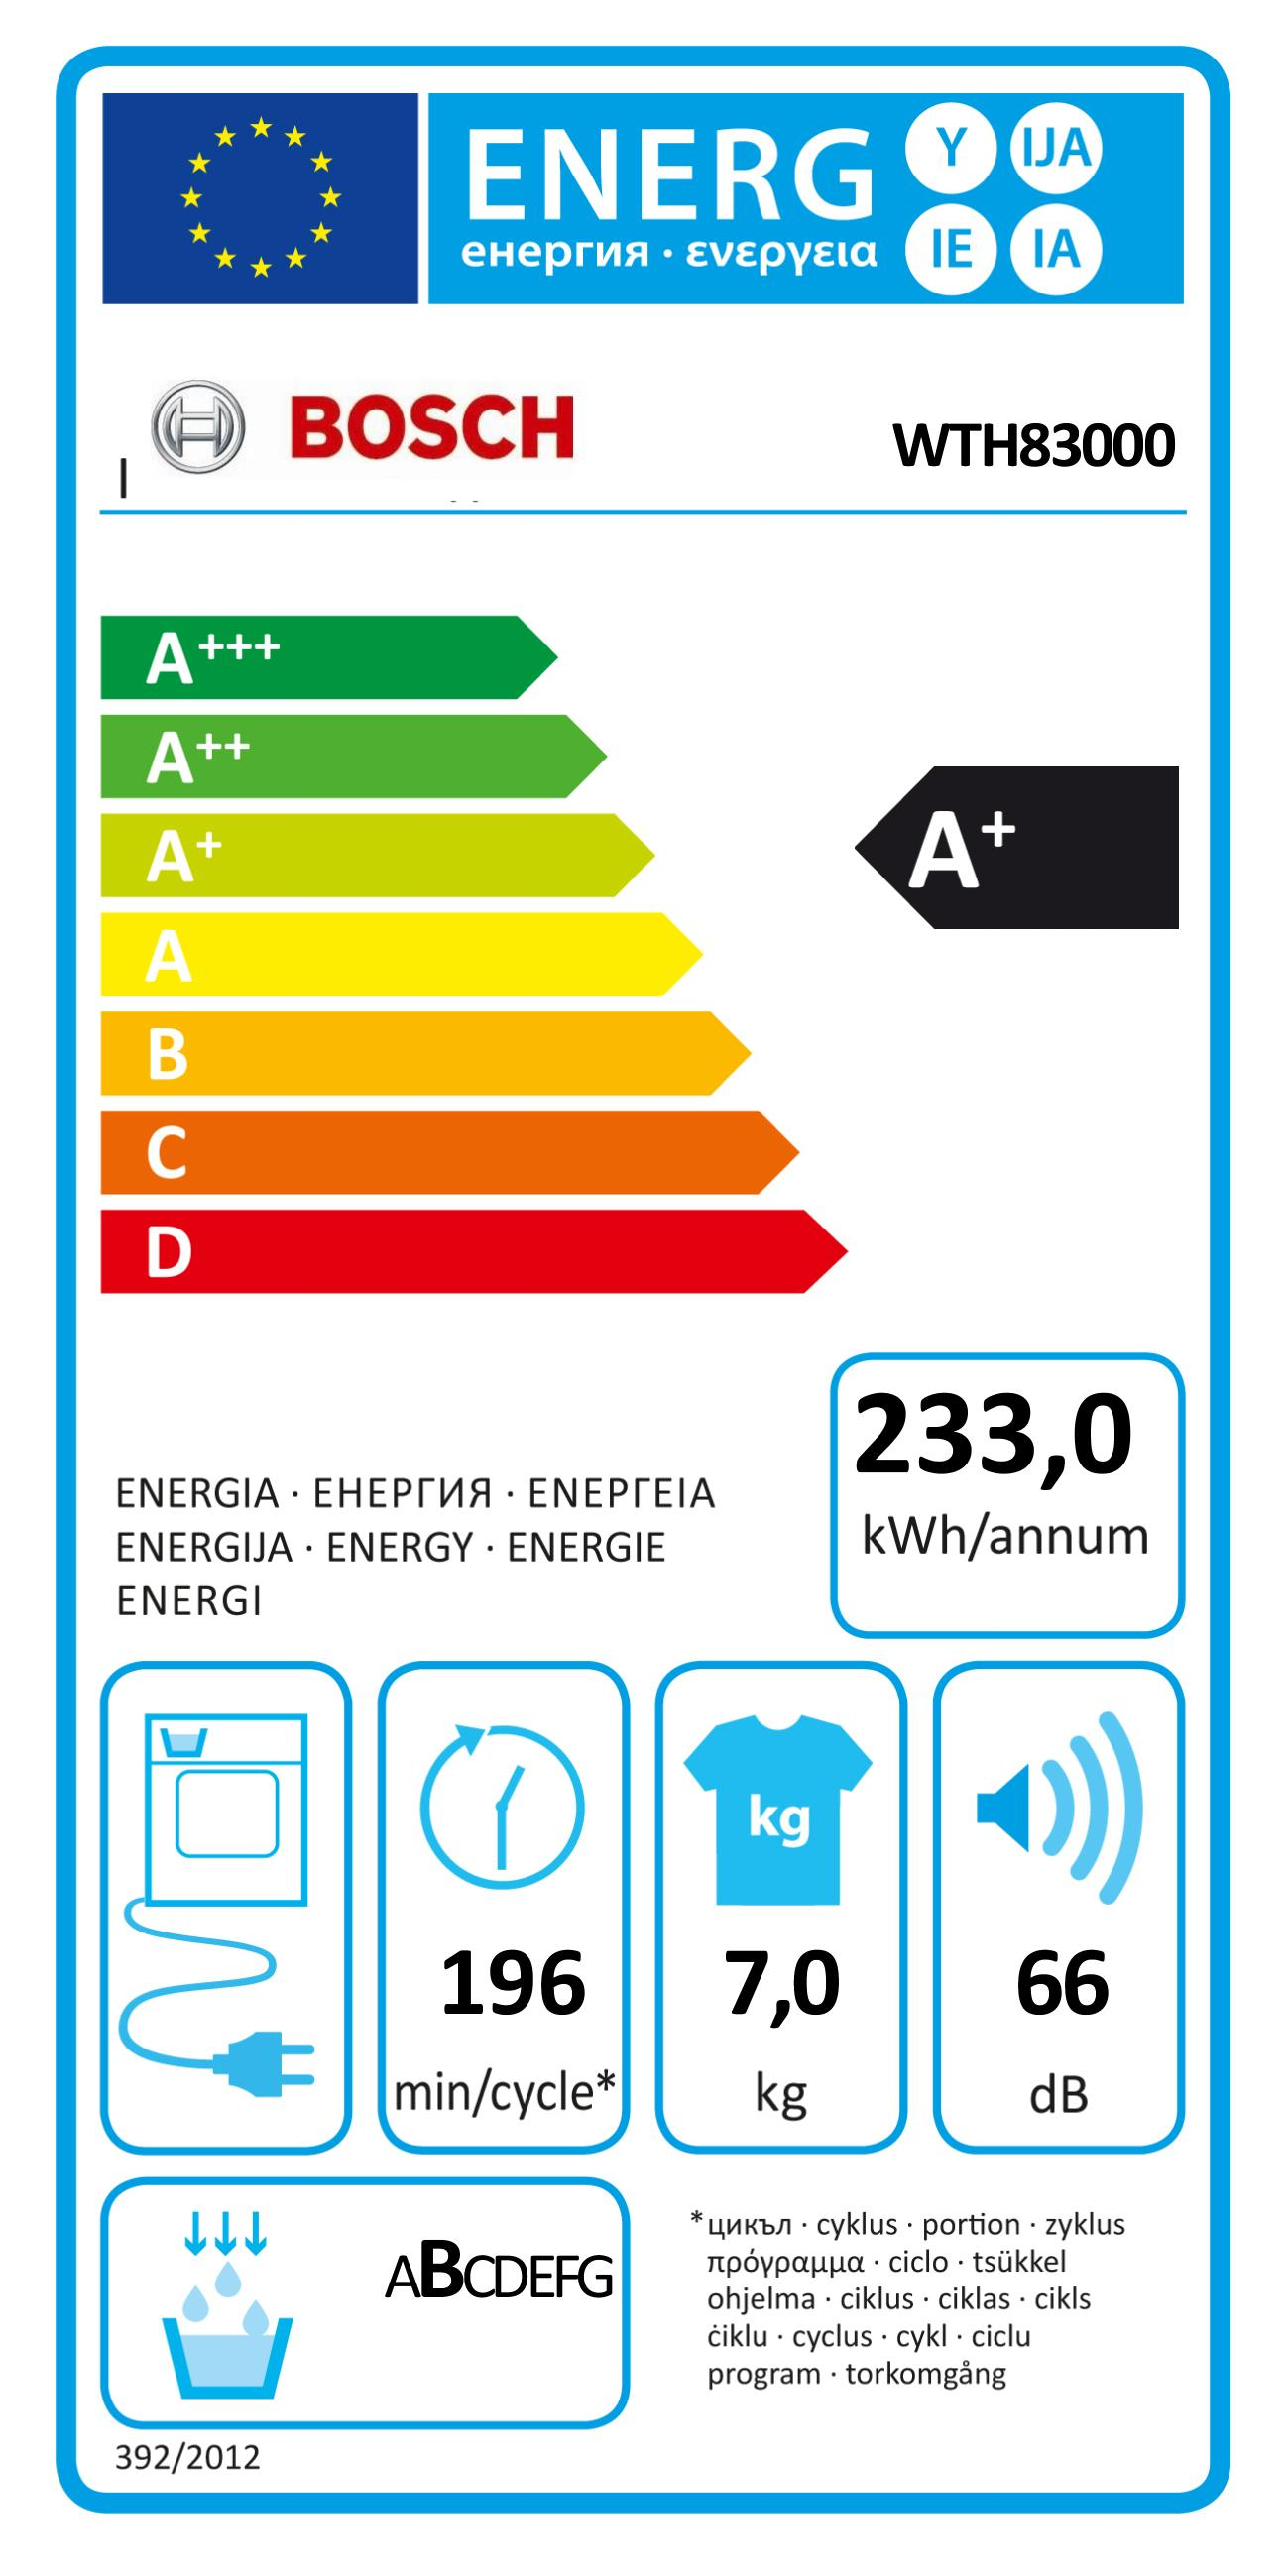 Energy Label: A+